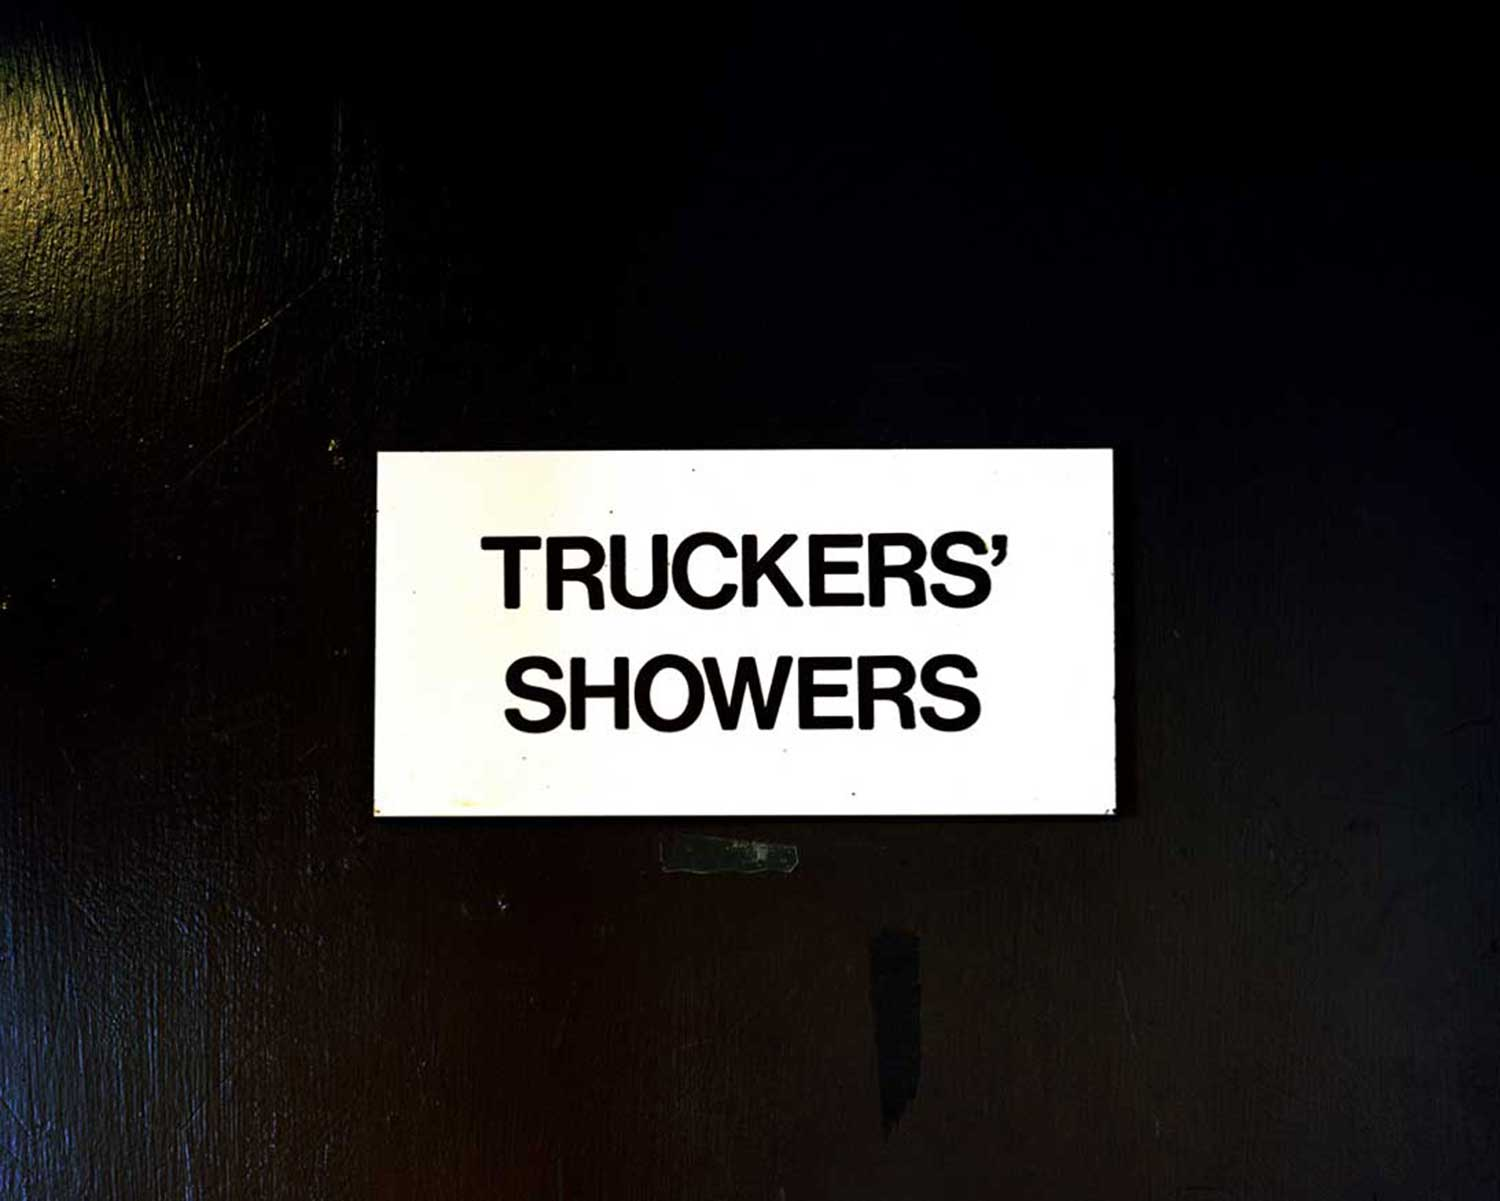 Truckers-Shower.jpg